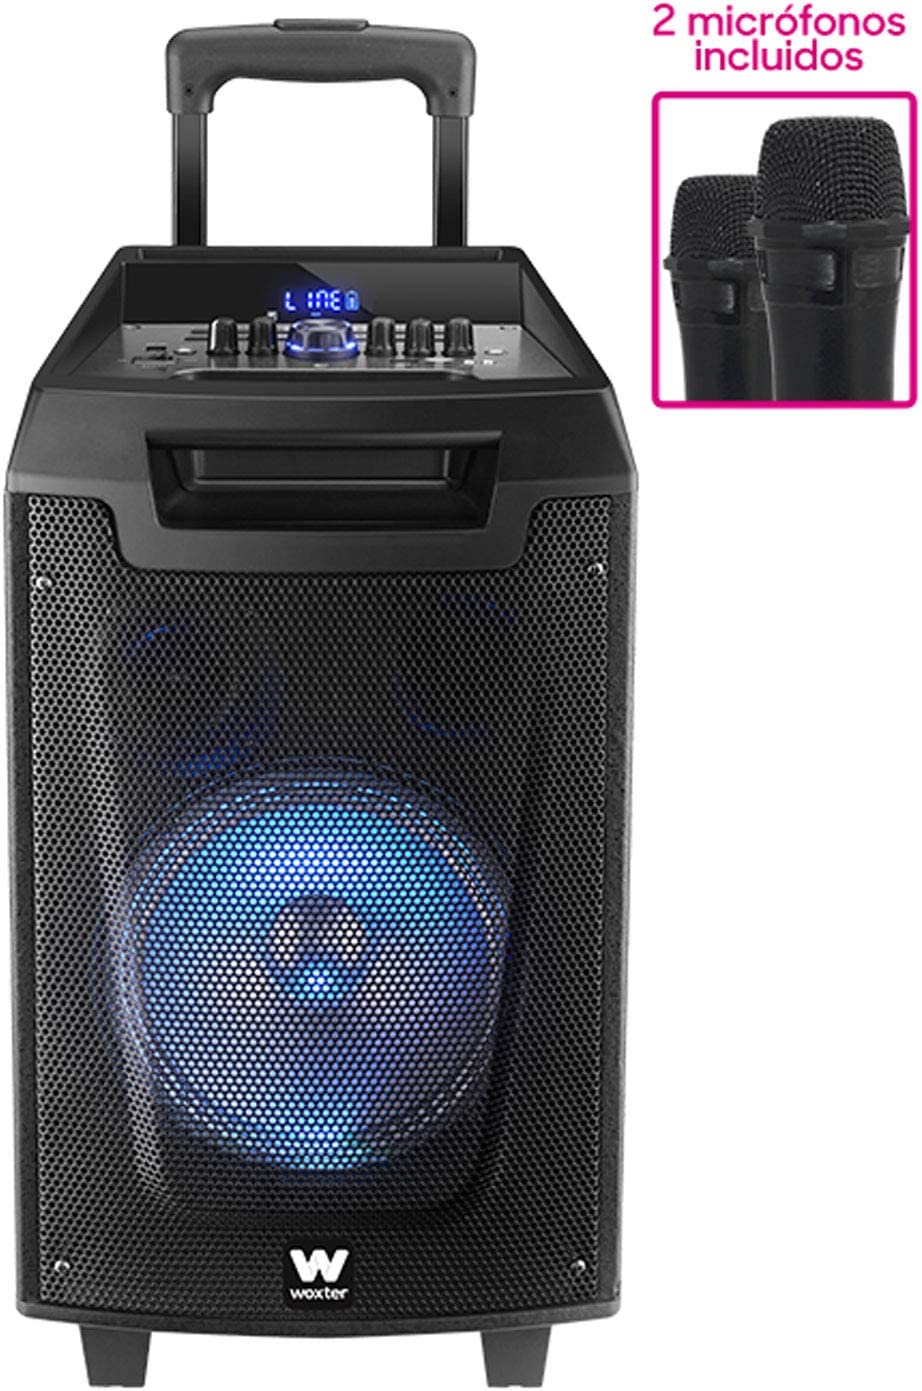 Woxter Rock'n'Roller - Altavoz Trolley con Función Karaoke, 80W, Display Led, BLUETOOTH, Lector SD/USB, AUX, Prioridad Mic, Mando a Distancia, Batería de Alta Capacidad, X2 Micrófonos Inalámbricos